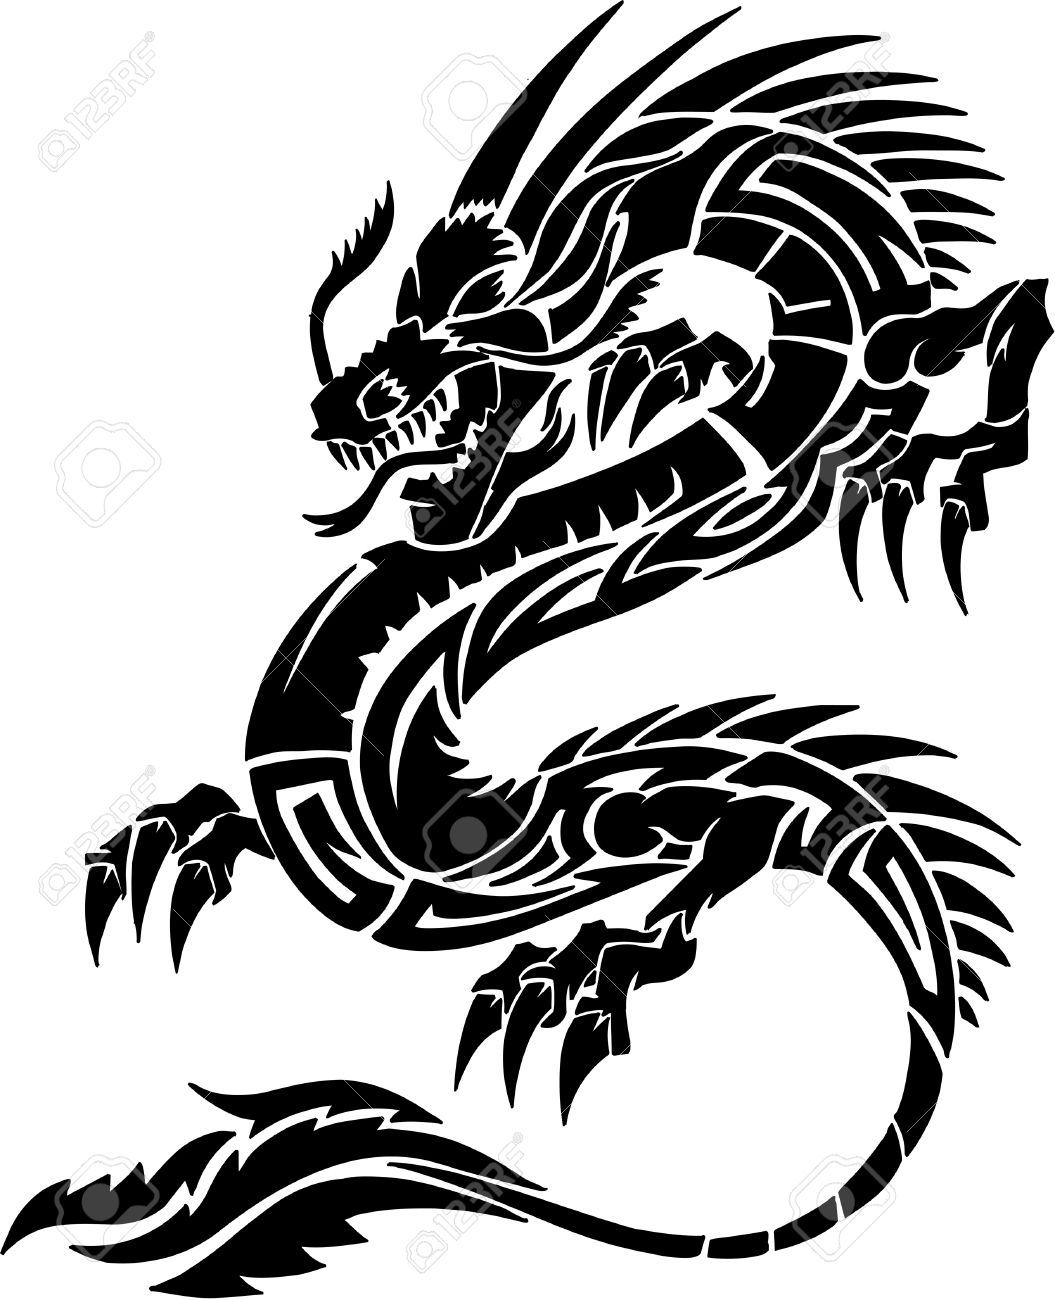 Download Free png Tribal Tattoo Dragon Vector Illustration.